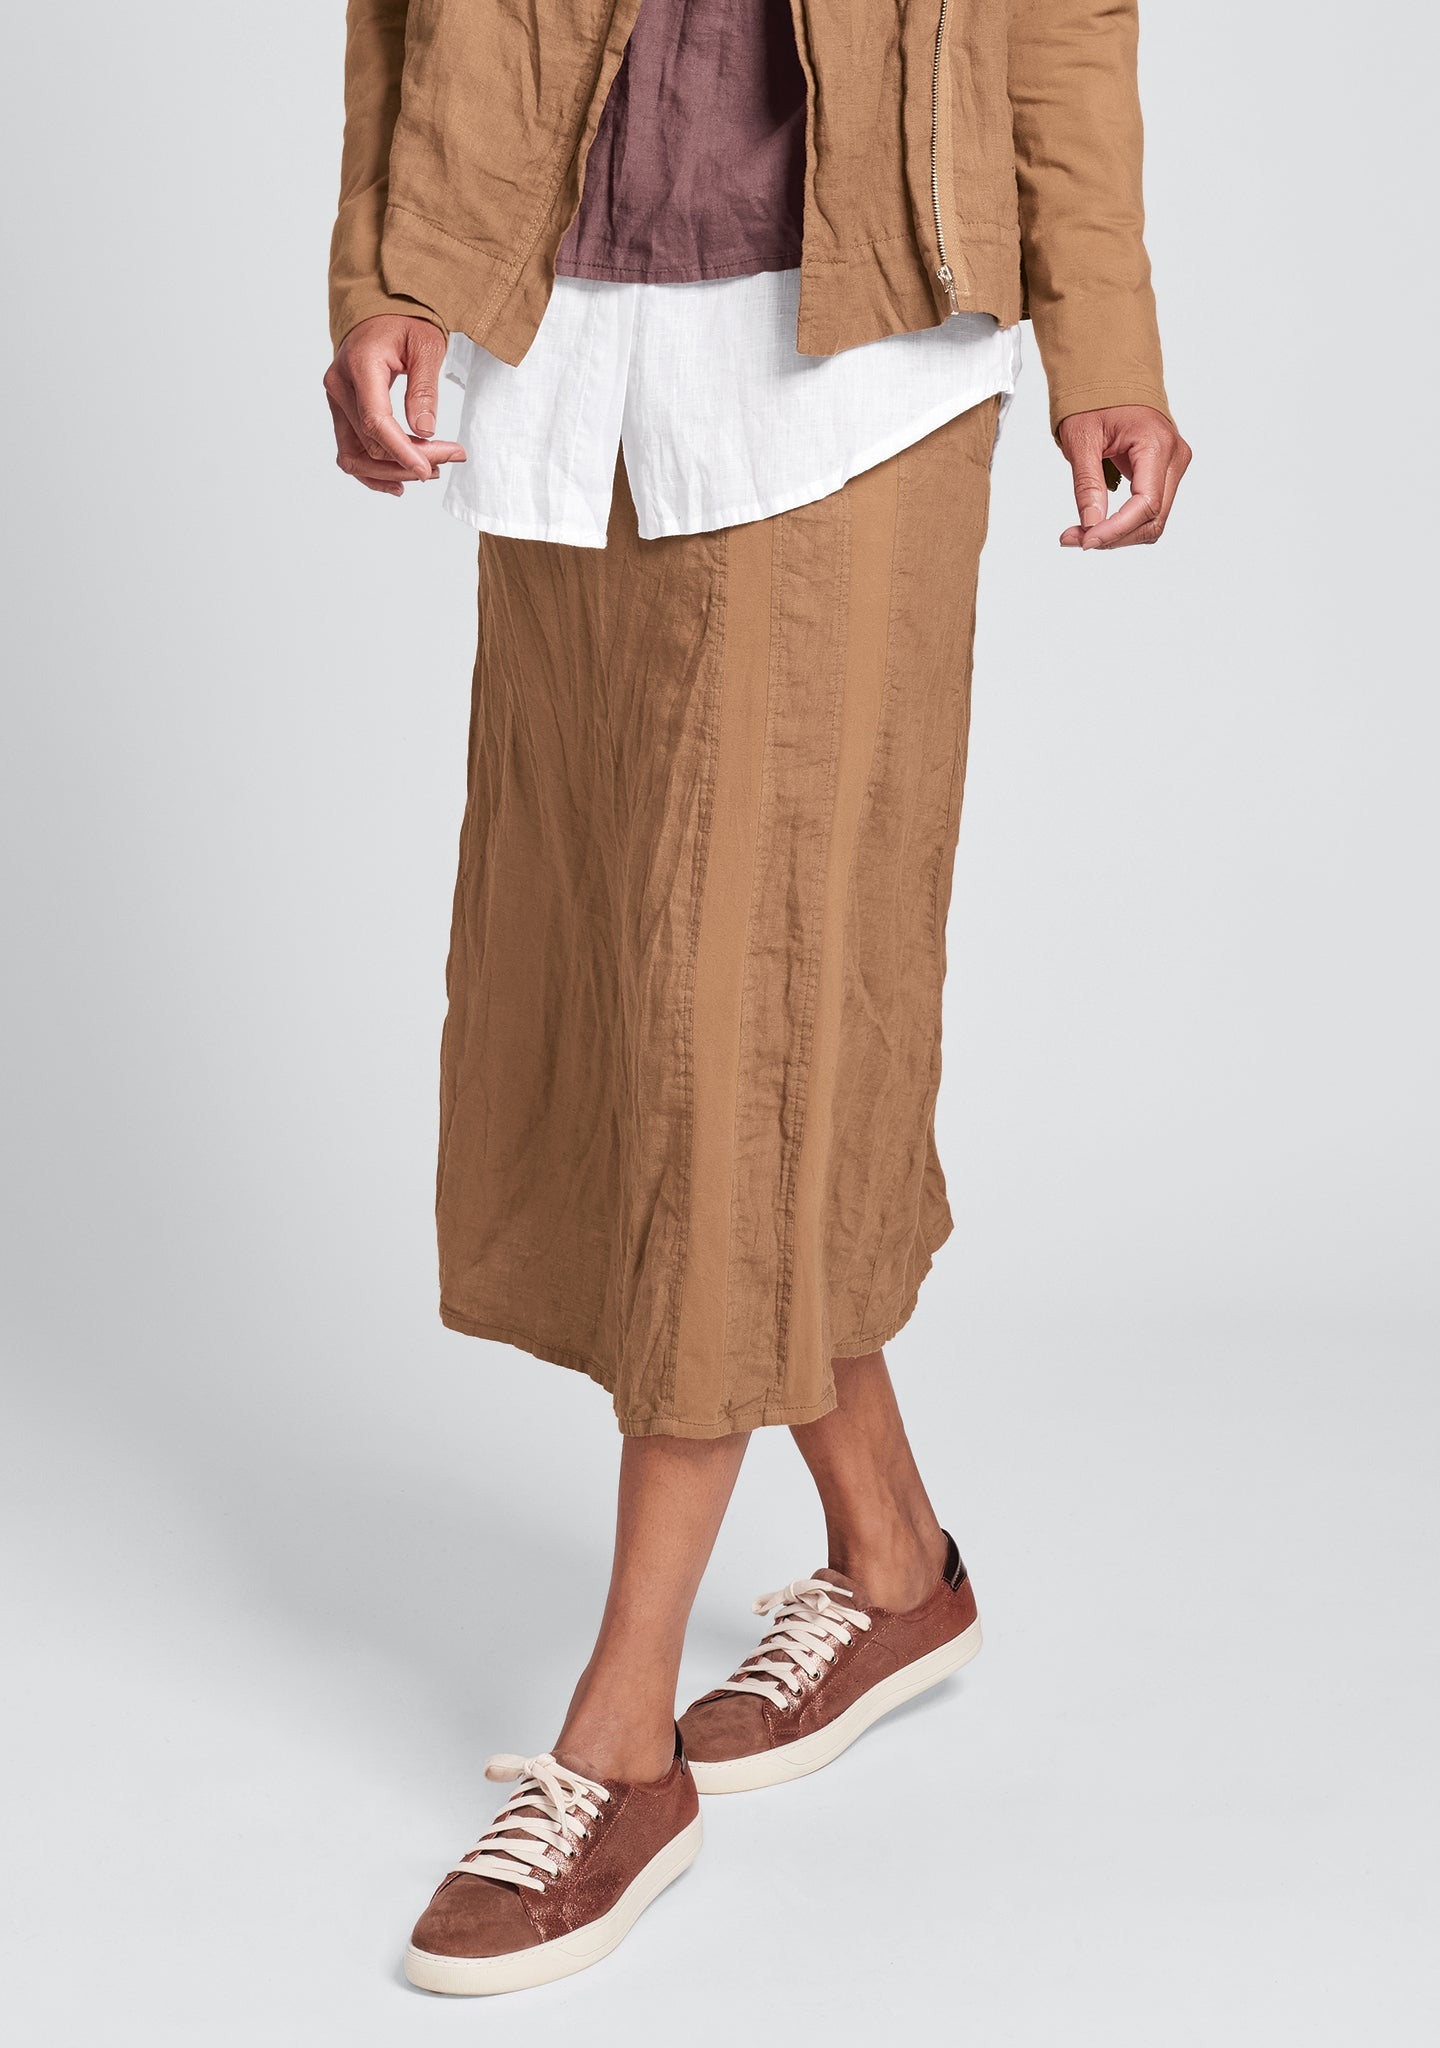 harbor skirt linen drawstring skirt orange